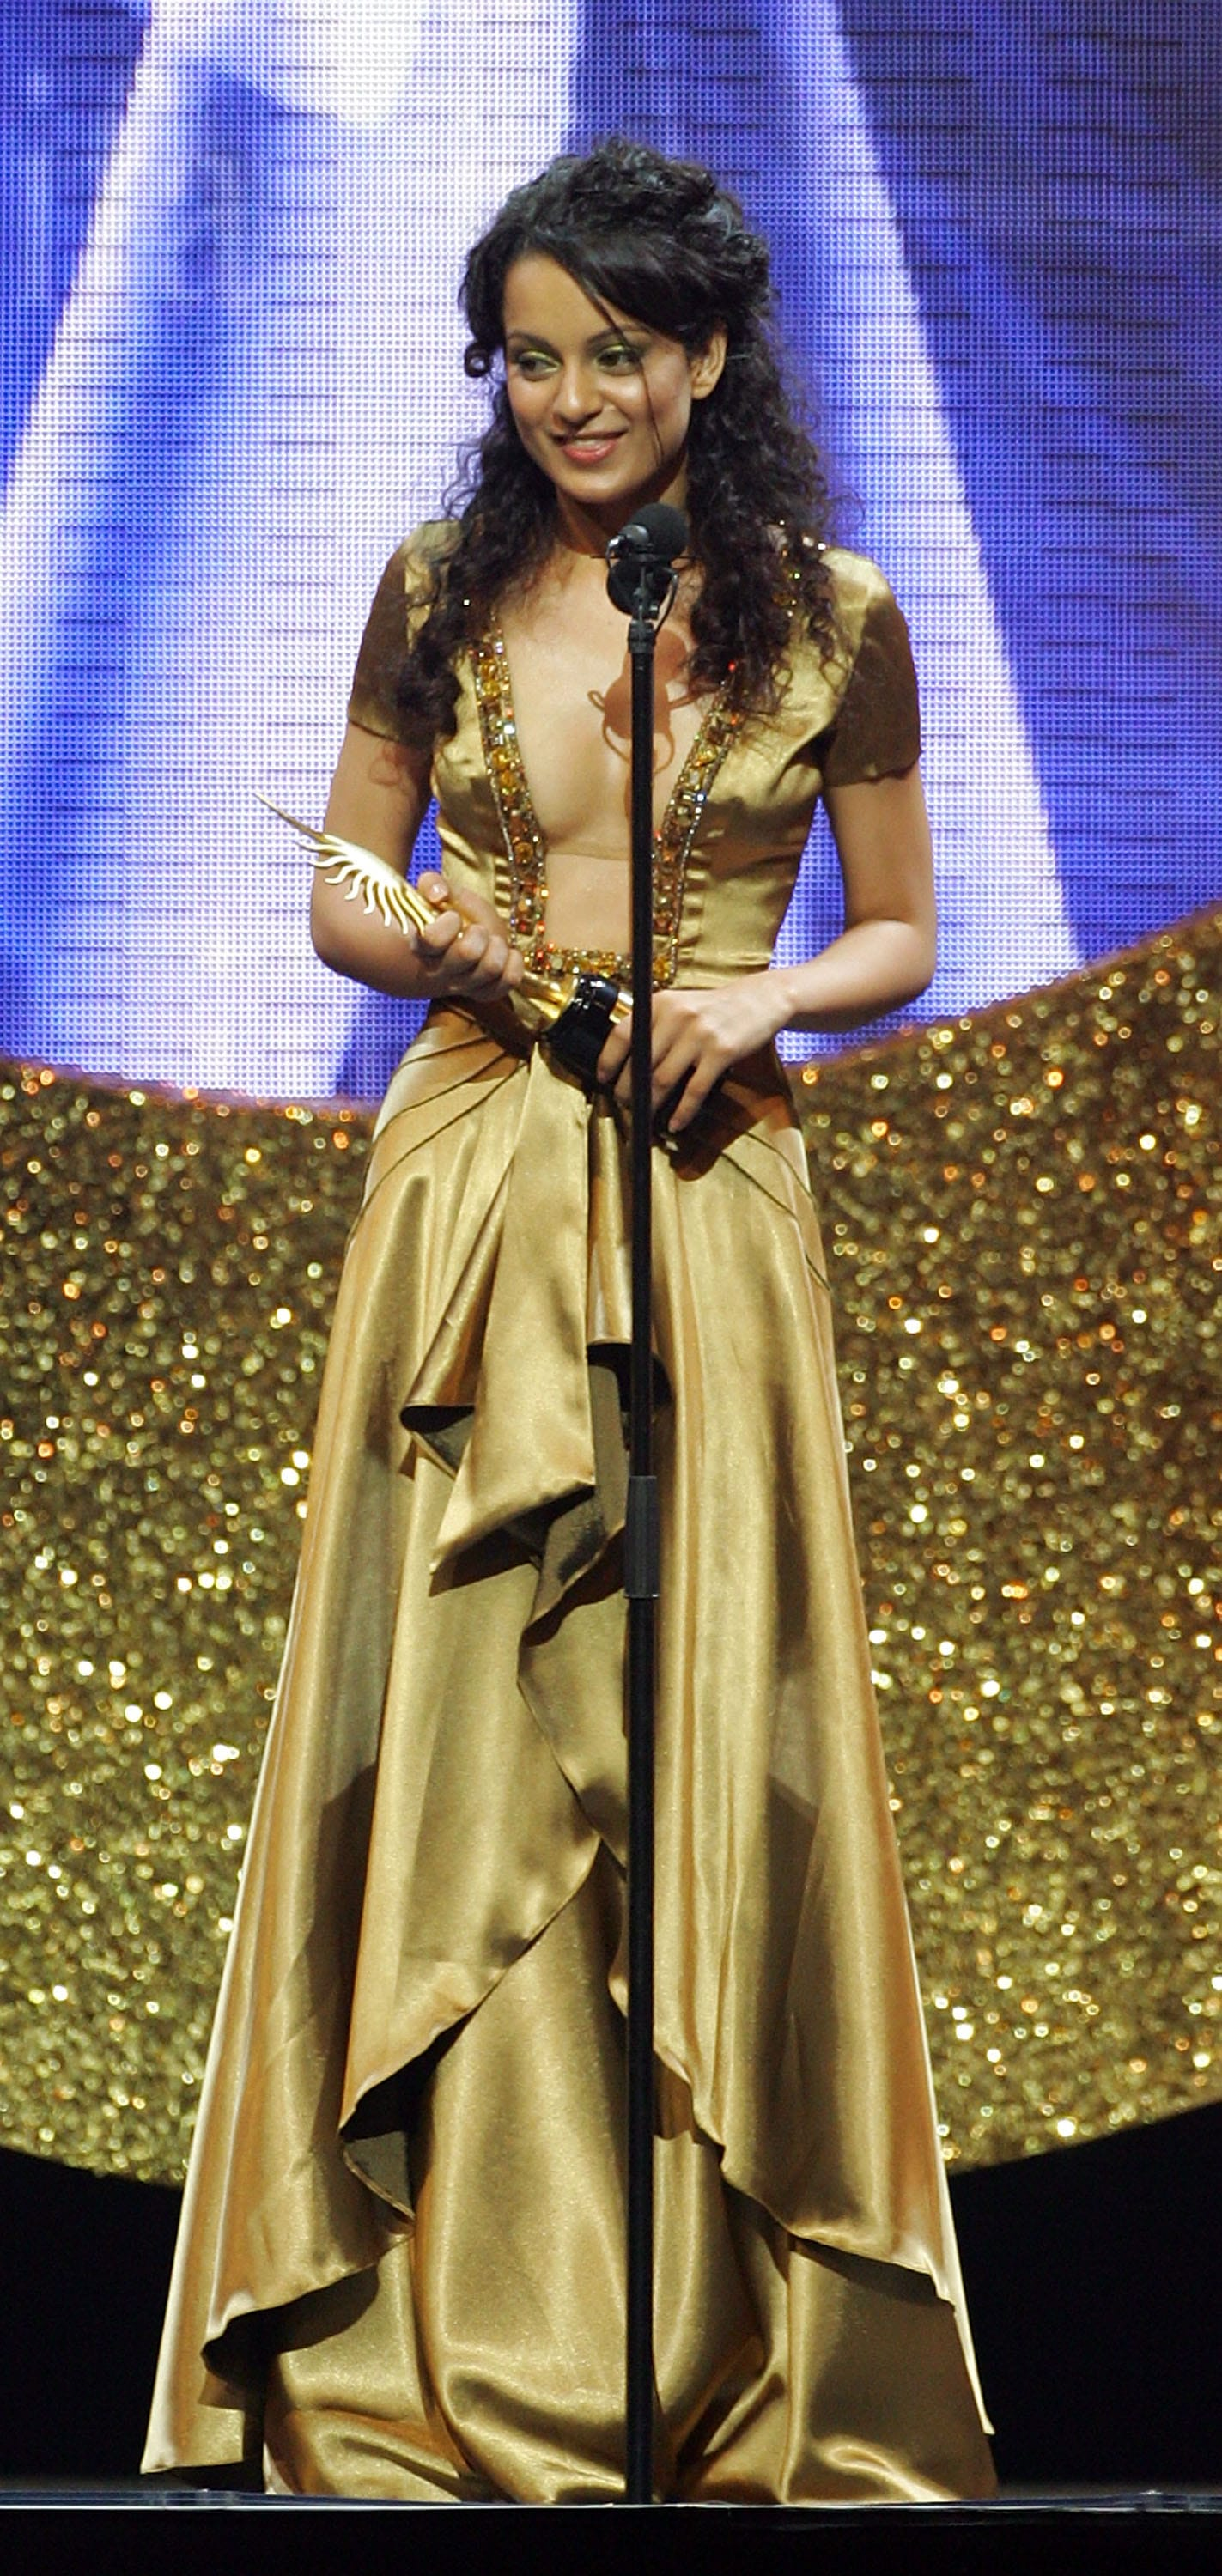 Bollywood actress Kangana Ranaut collects an award on stage at the International Indian Film Academy Awards (IIFAs).